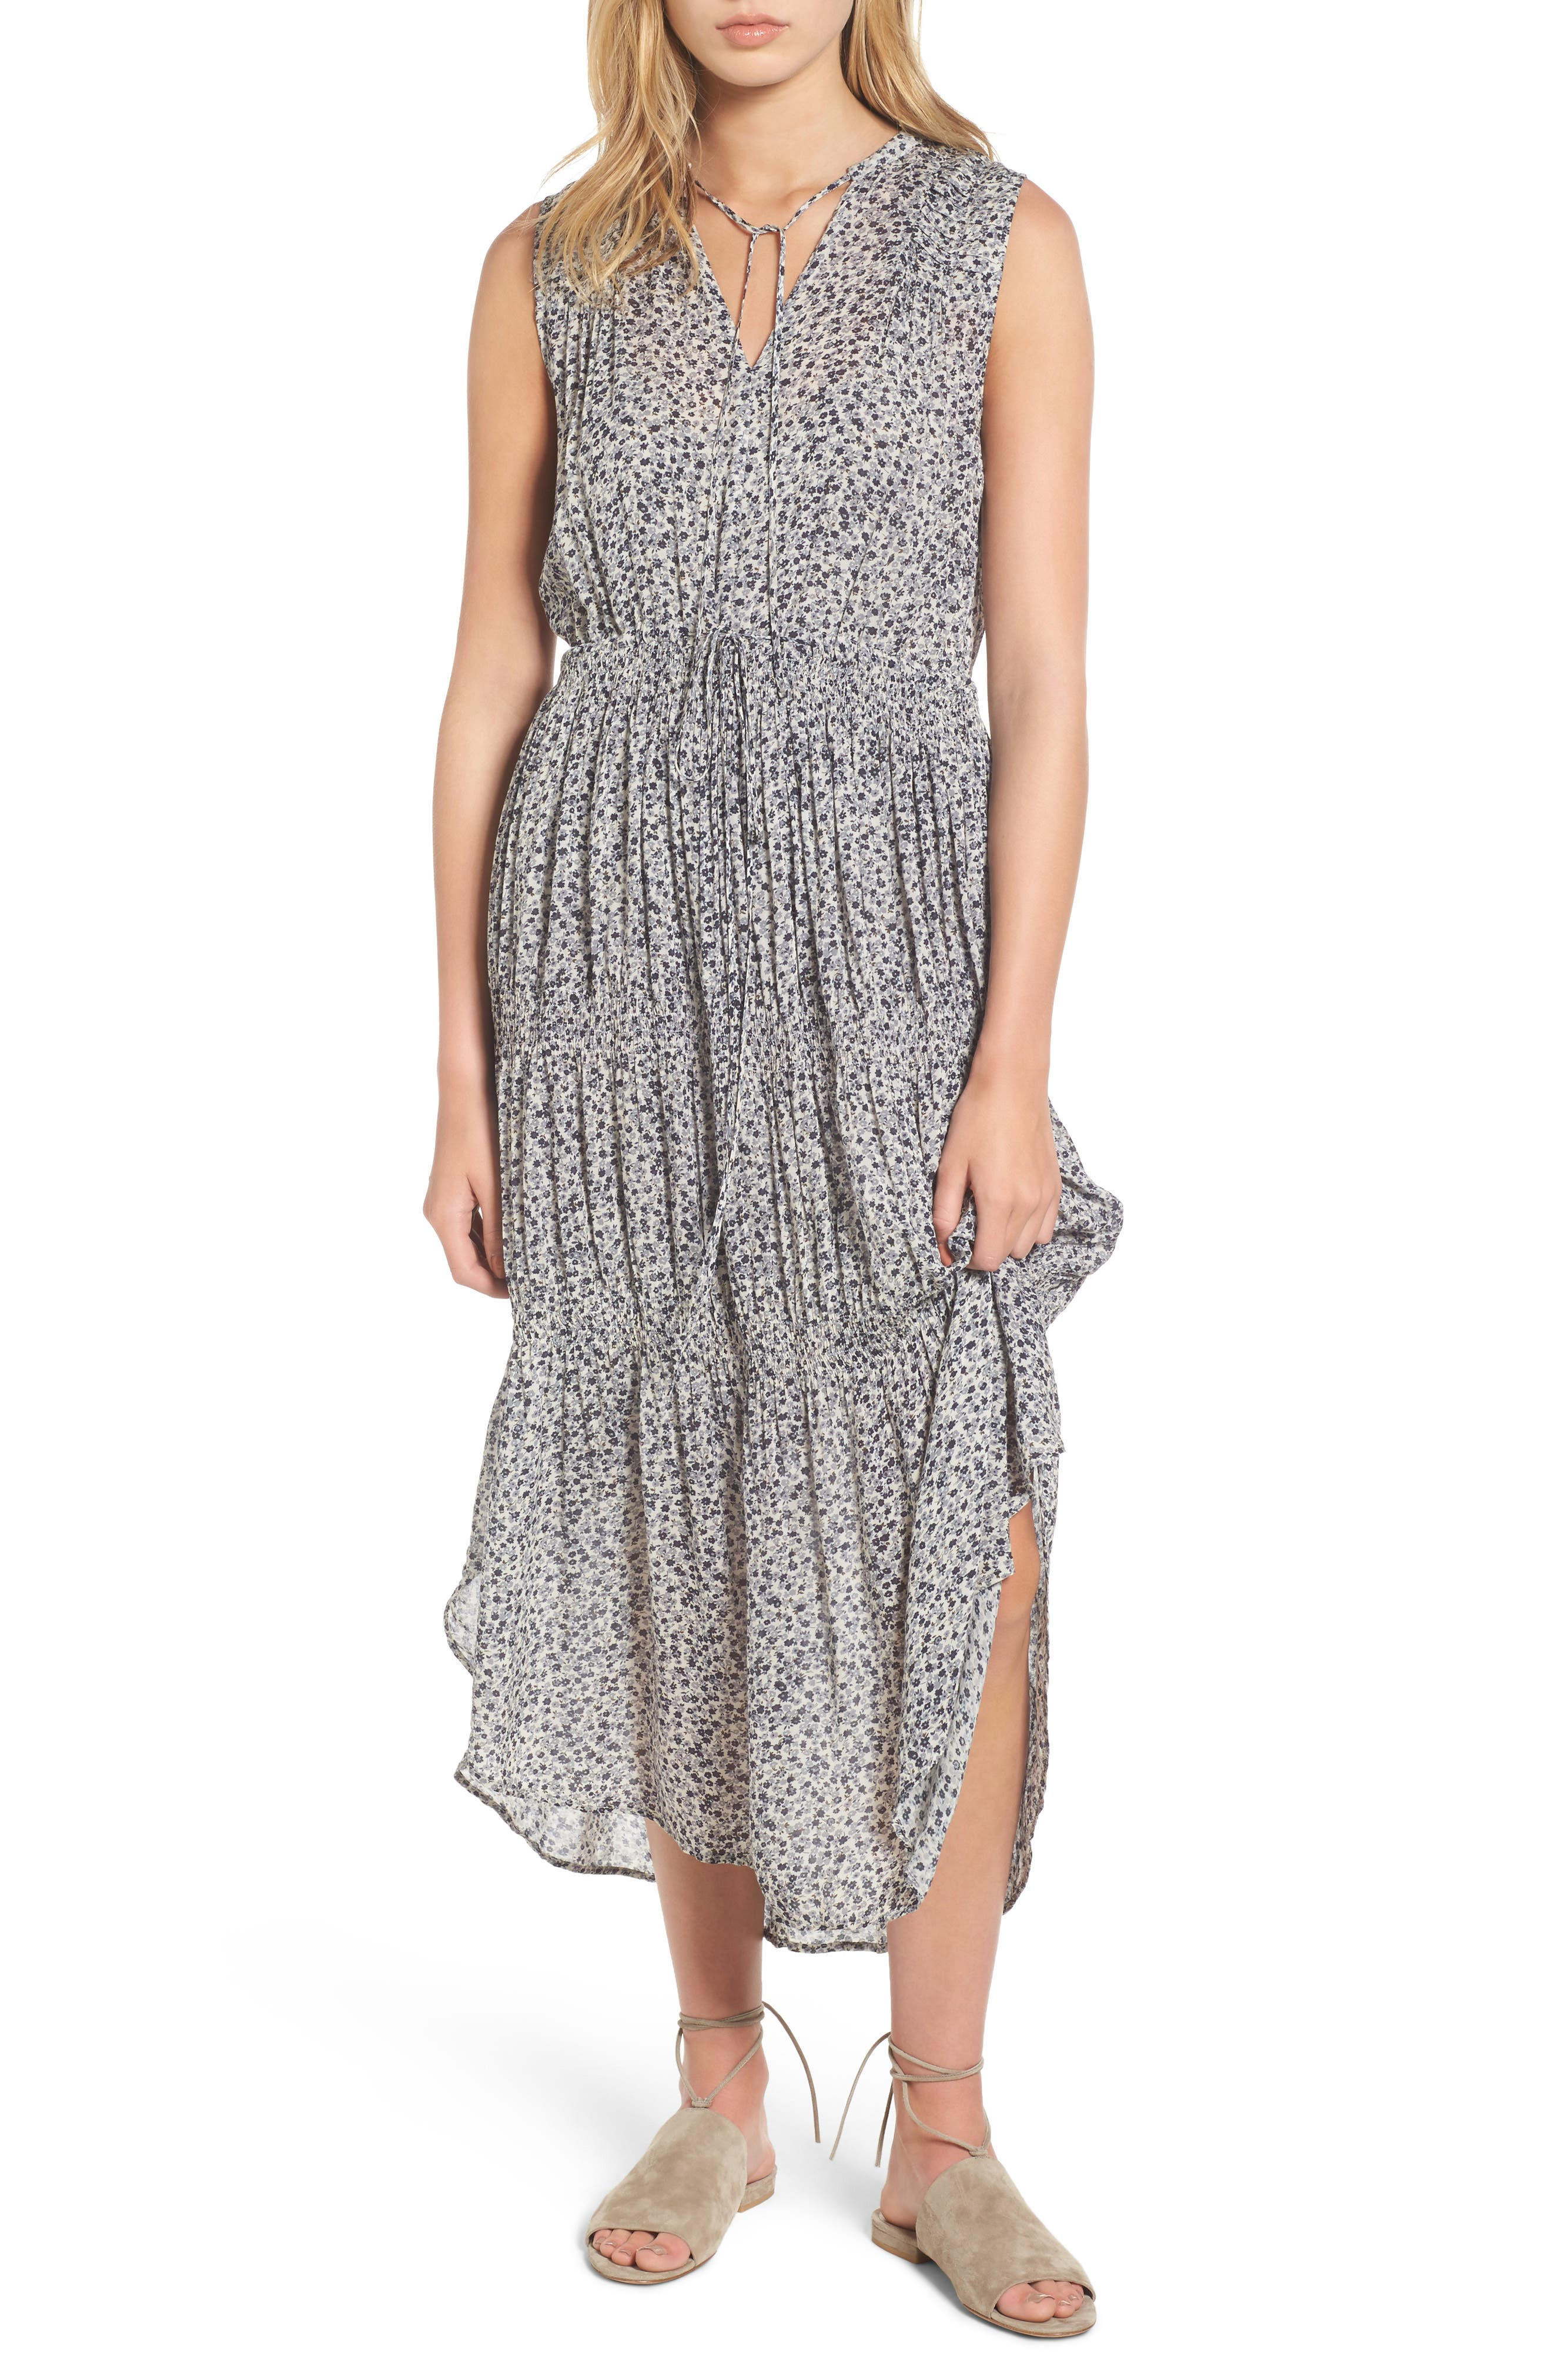 Alternate Image 1 Selected - James Perse Floral Pleated Midi Dress